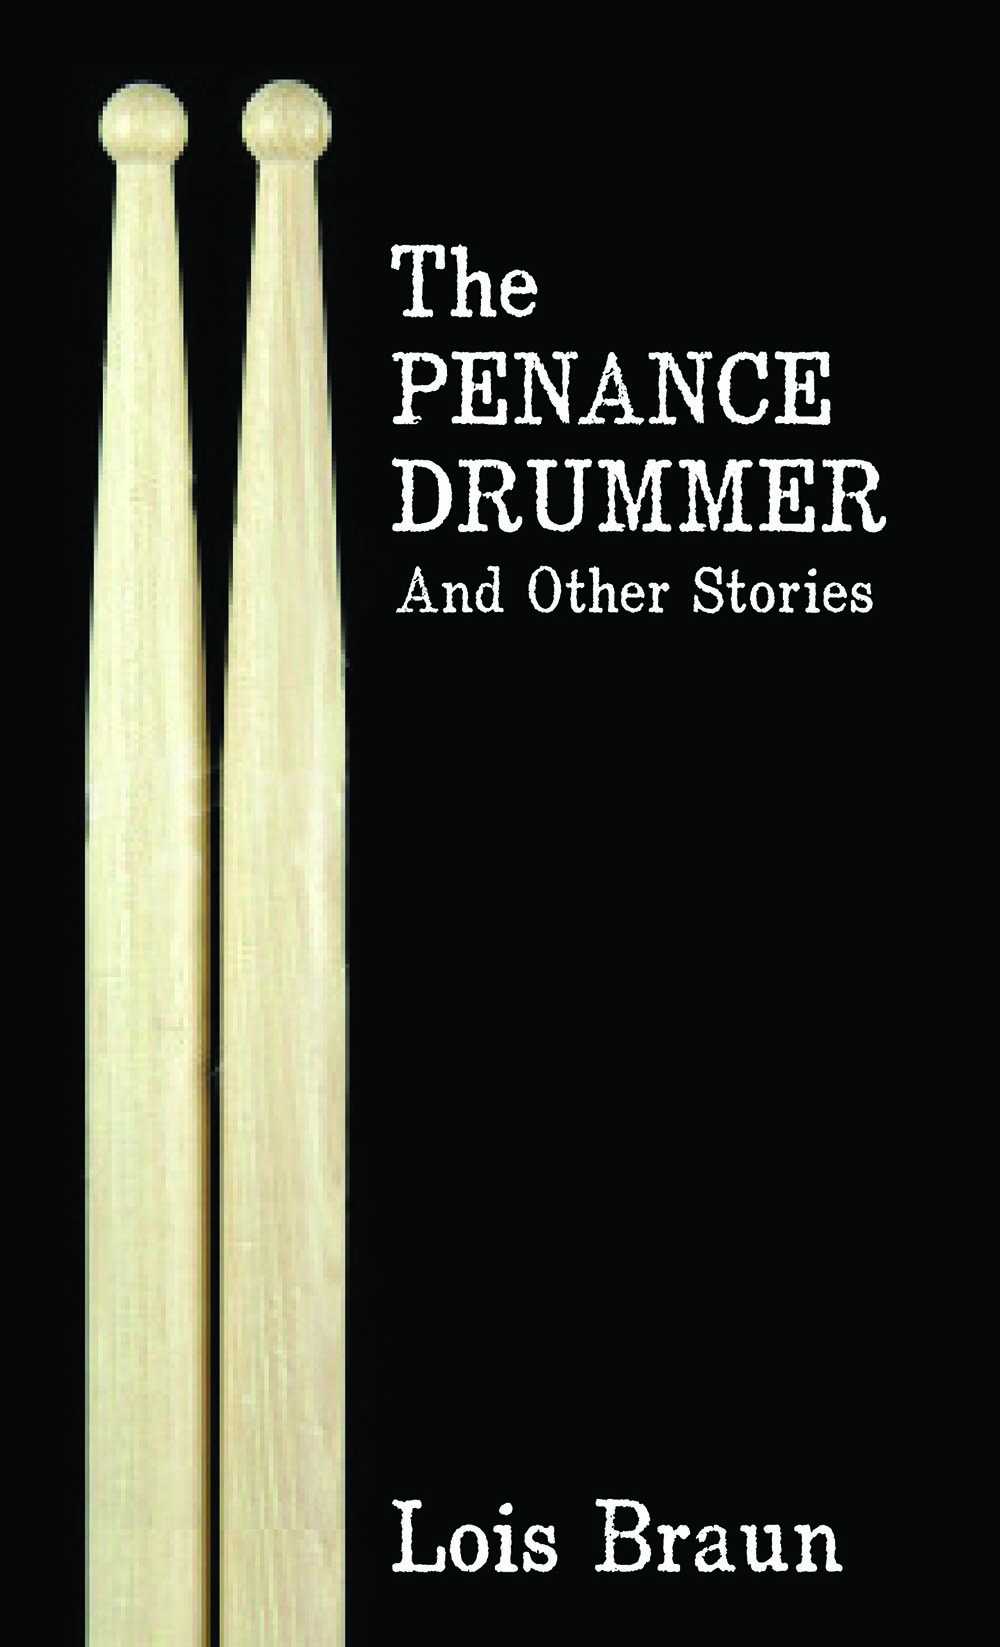 The Penance Drummer by Lois Braun